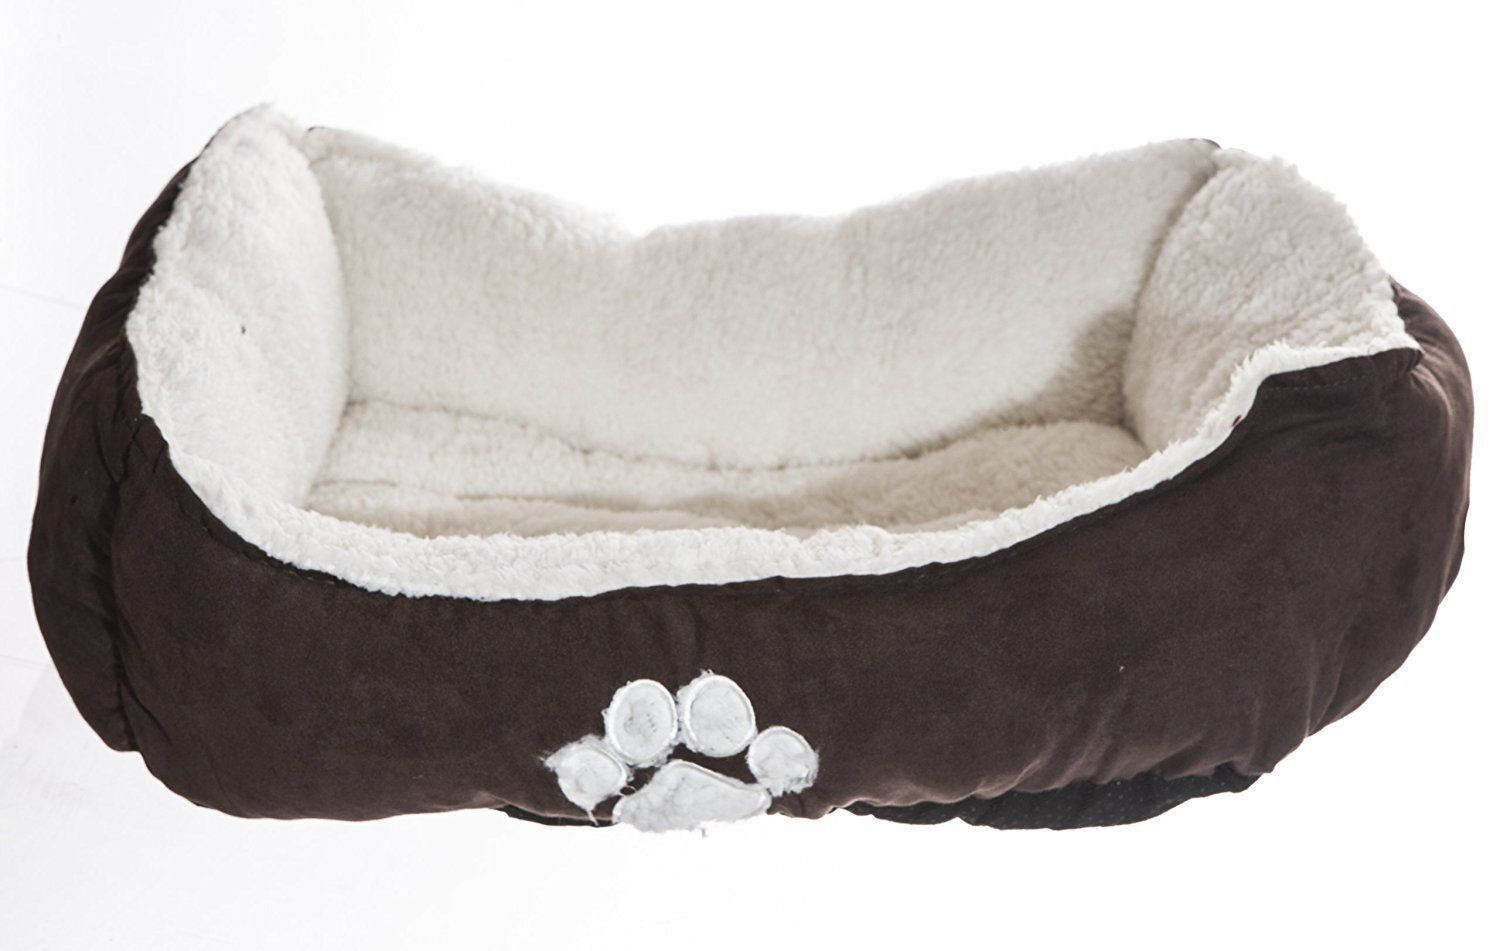 Sofantex Luxury Microfiber Pet Bed 25  L x 21  W x 8  H, Dark Coffee